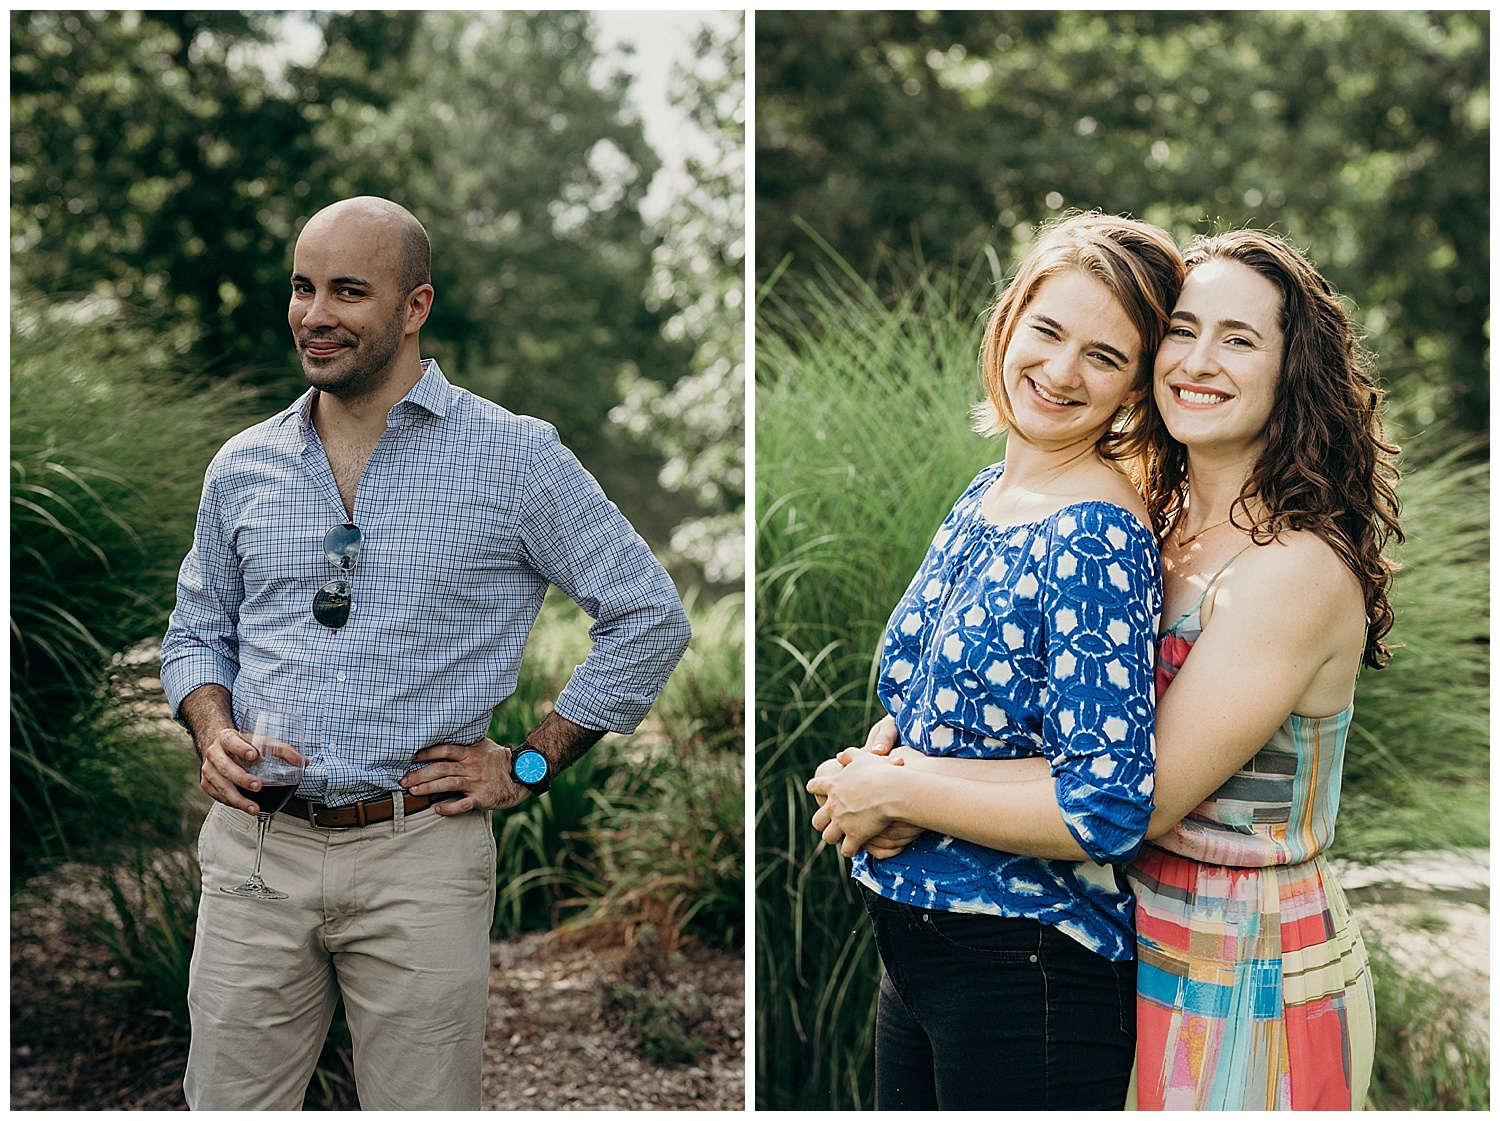 MEGAN-GRAHAM-PHOTOGRAPHY-DC-VIRGINIA-SURPRISE-PROPOSAL-ENGAGEMENT-PARTY-LOST-CREEK-WINERY-LUIS-ISHA4.jpg